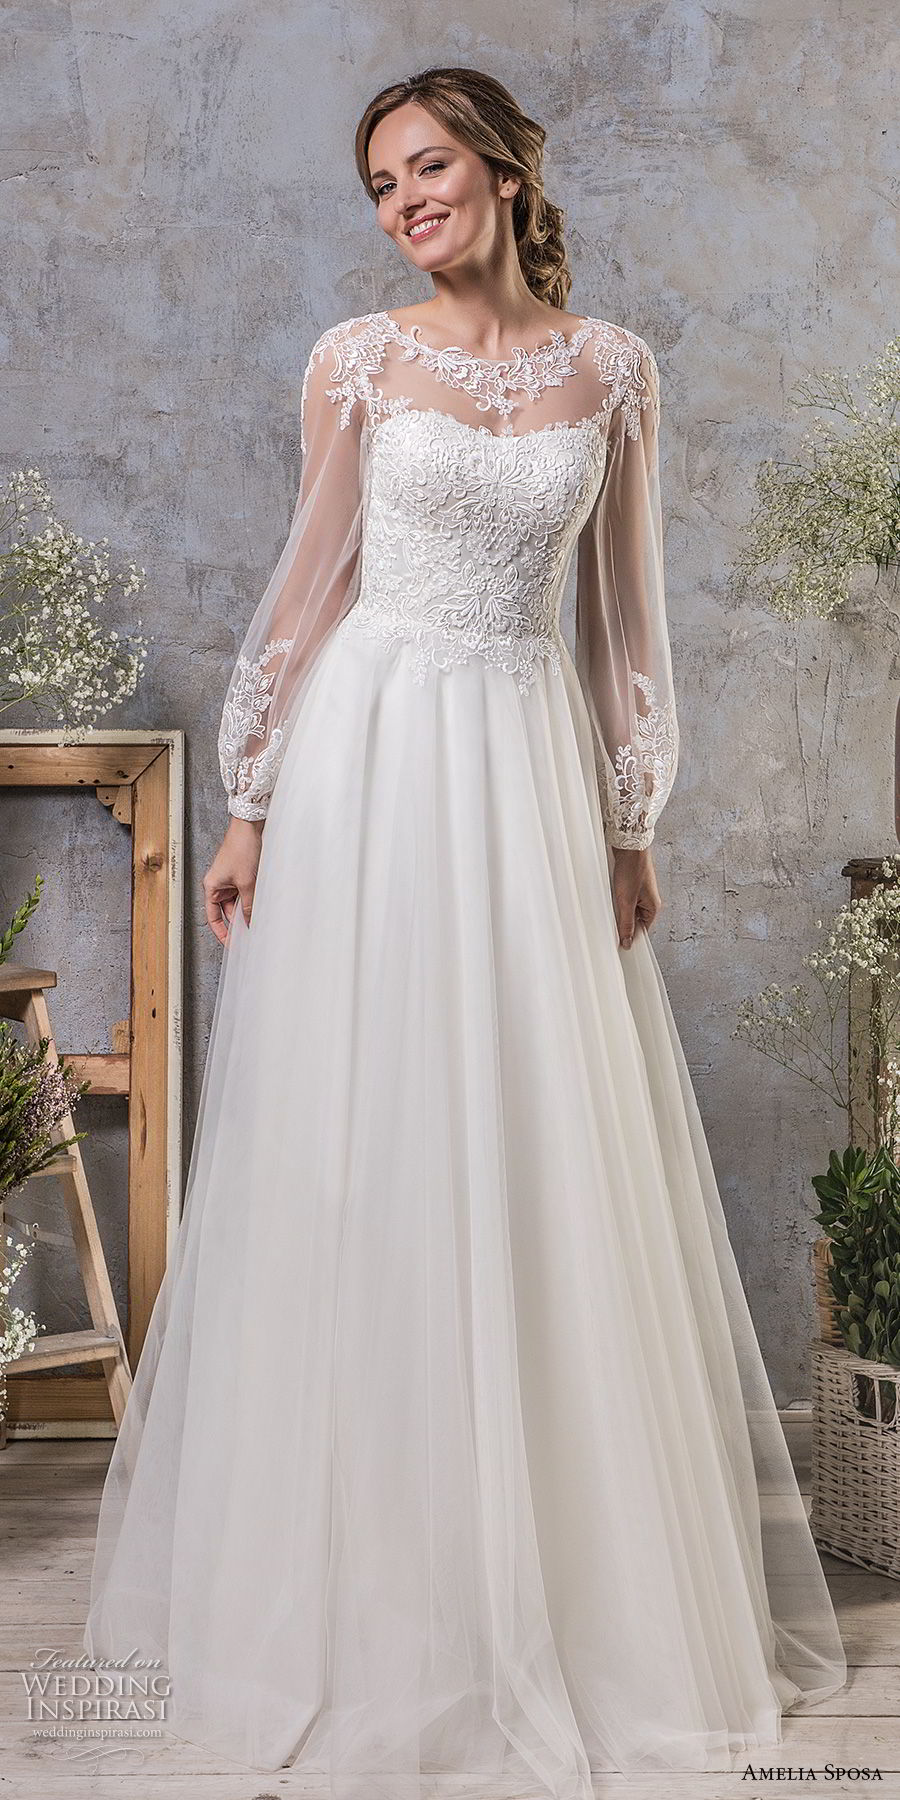 amelia sposa fall 2018 bridal long bishop sleeves illusion jewel semi sweetheart neckline heavily embellished bodice romantic a line wedding dress open v back chapel train (16) mv